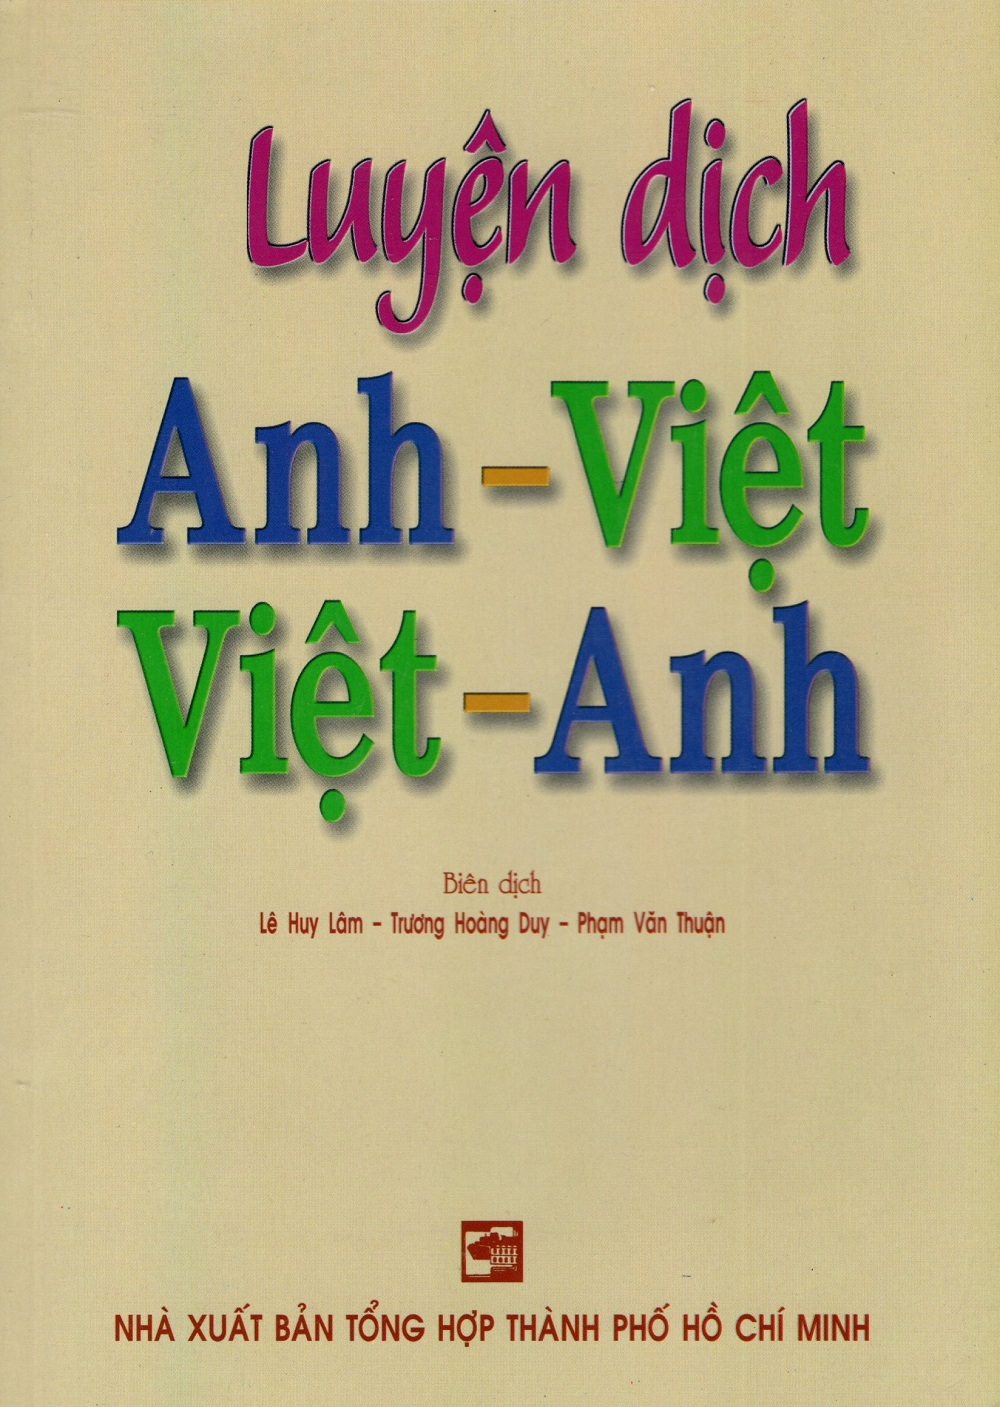 Luyện Dịch Anh - Việt Việt - Anh